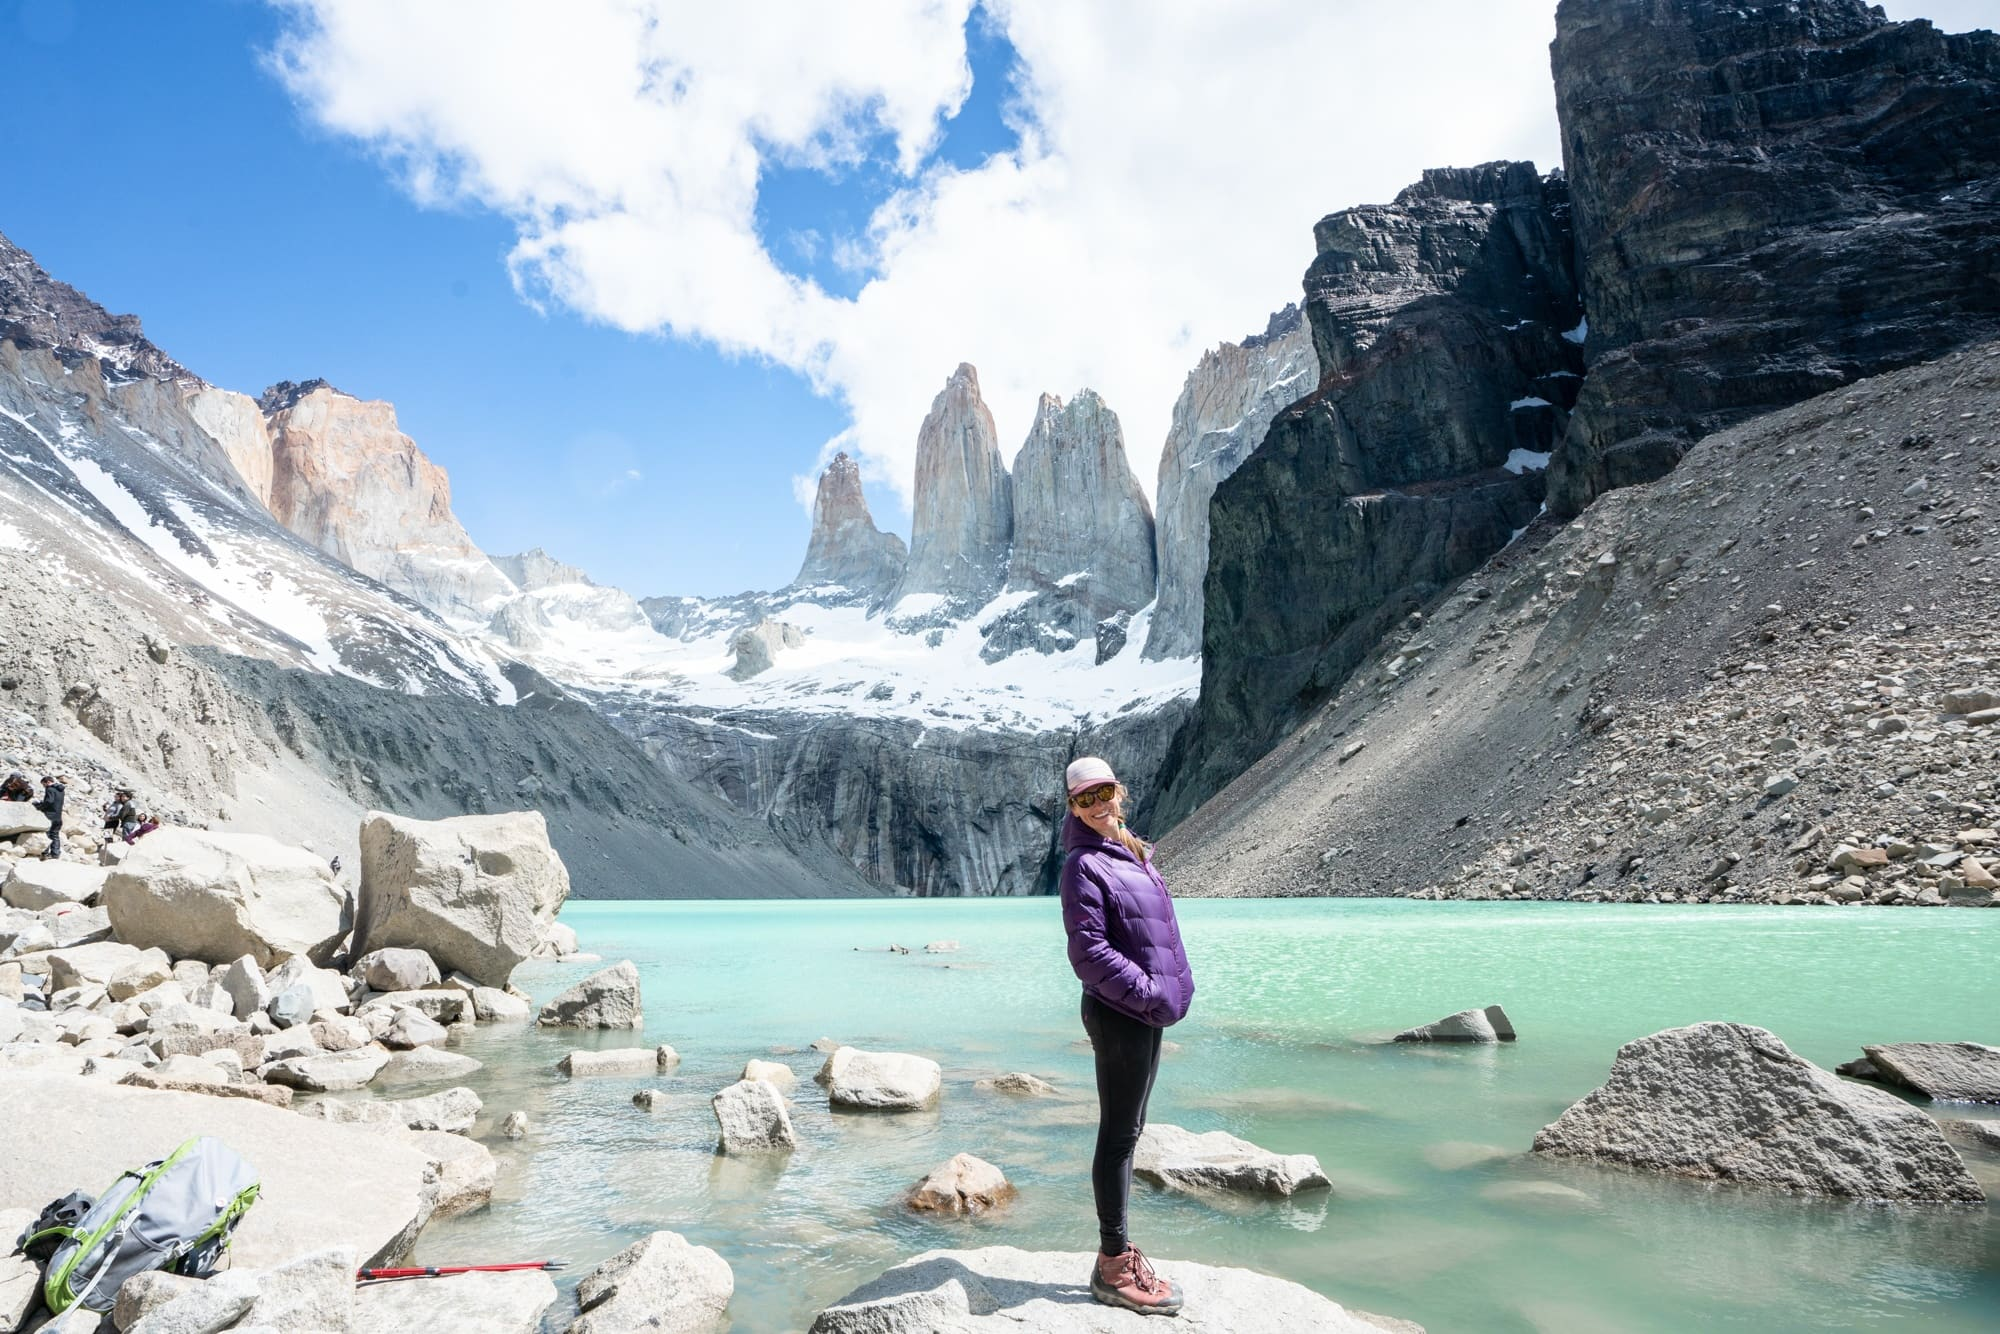 Hiking the W Trek in Torres Del Paine, Patagonia: Itinerary, Gear & Camping Tips